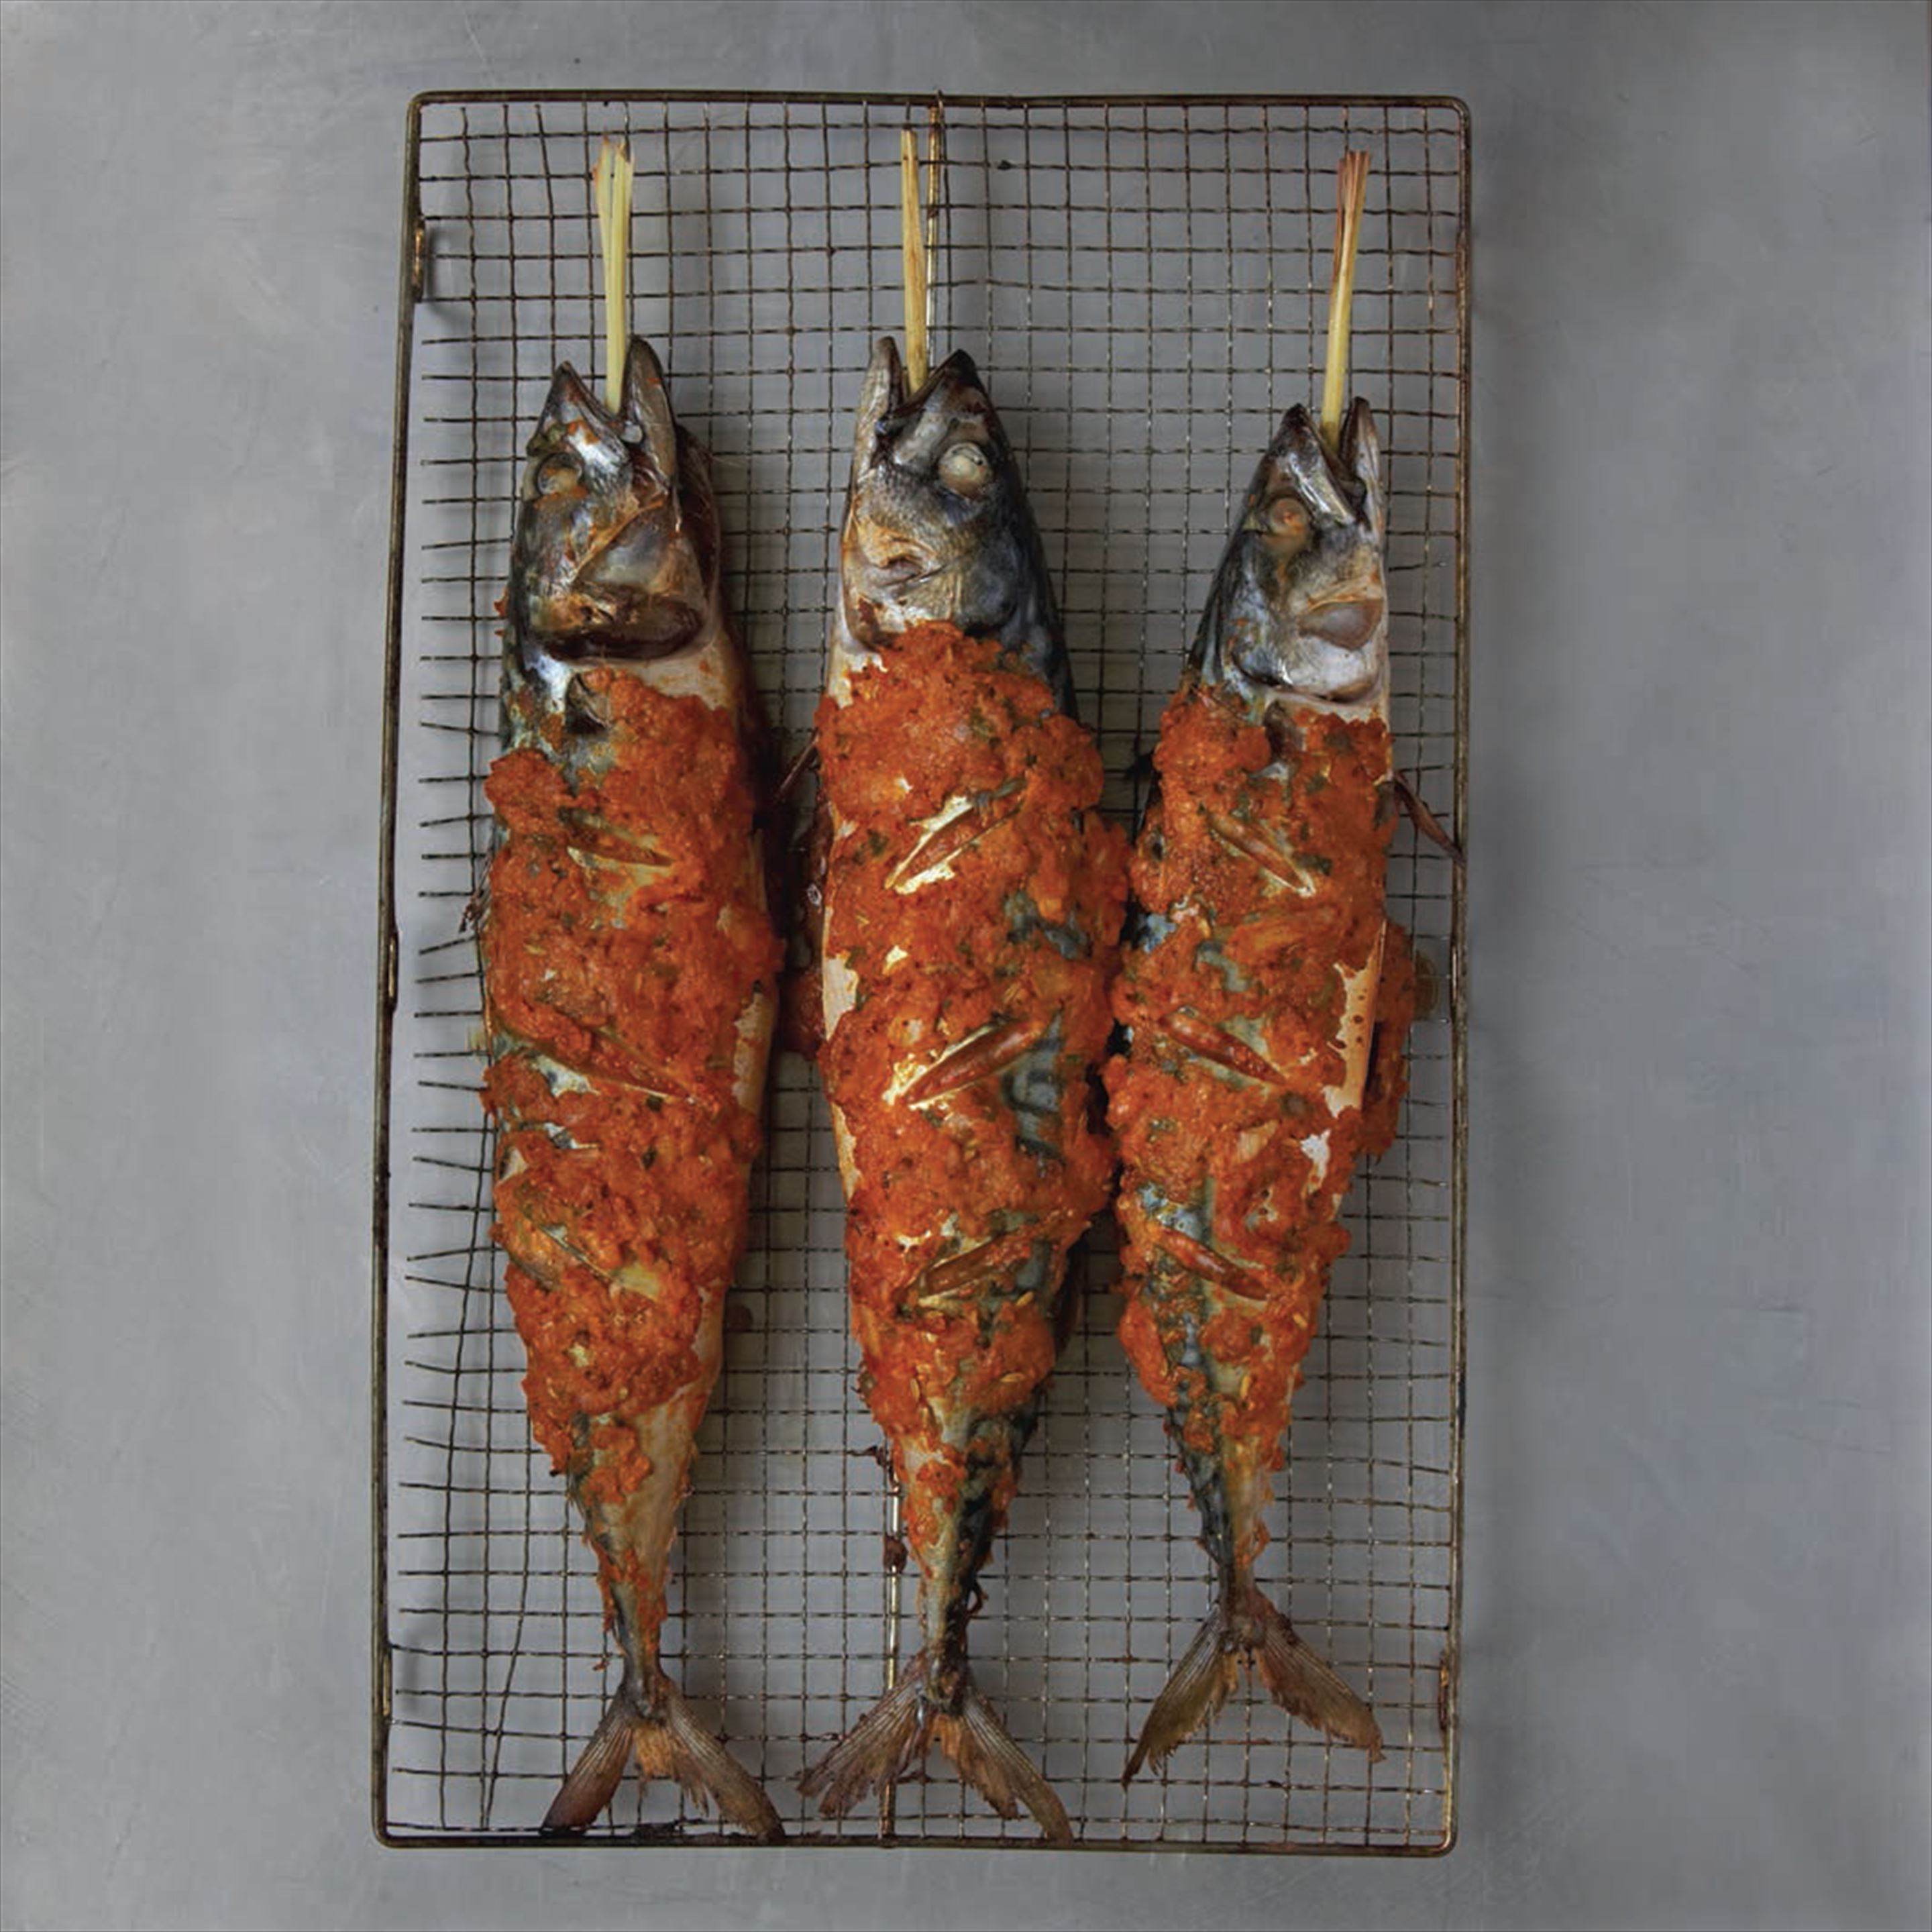 Roasted whole mackerel with lemongrass and spices